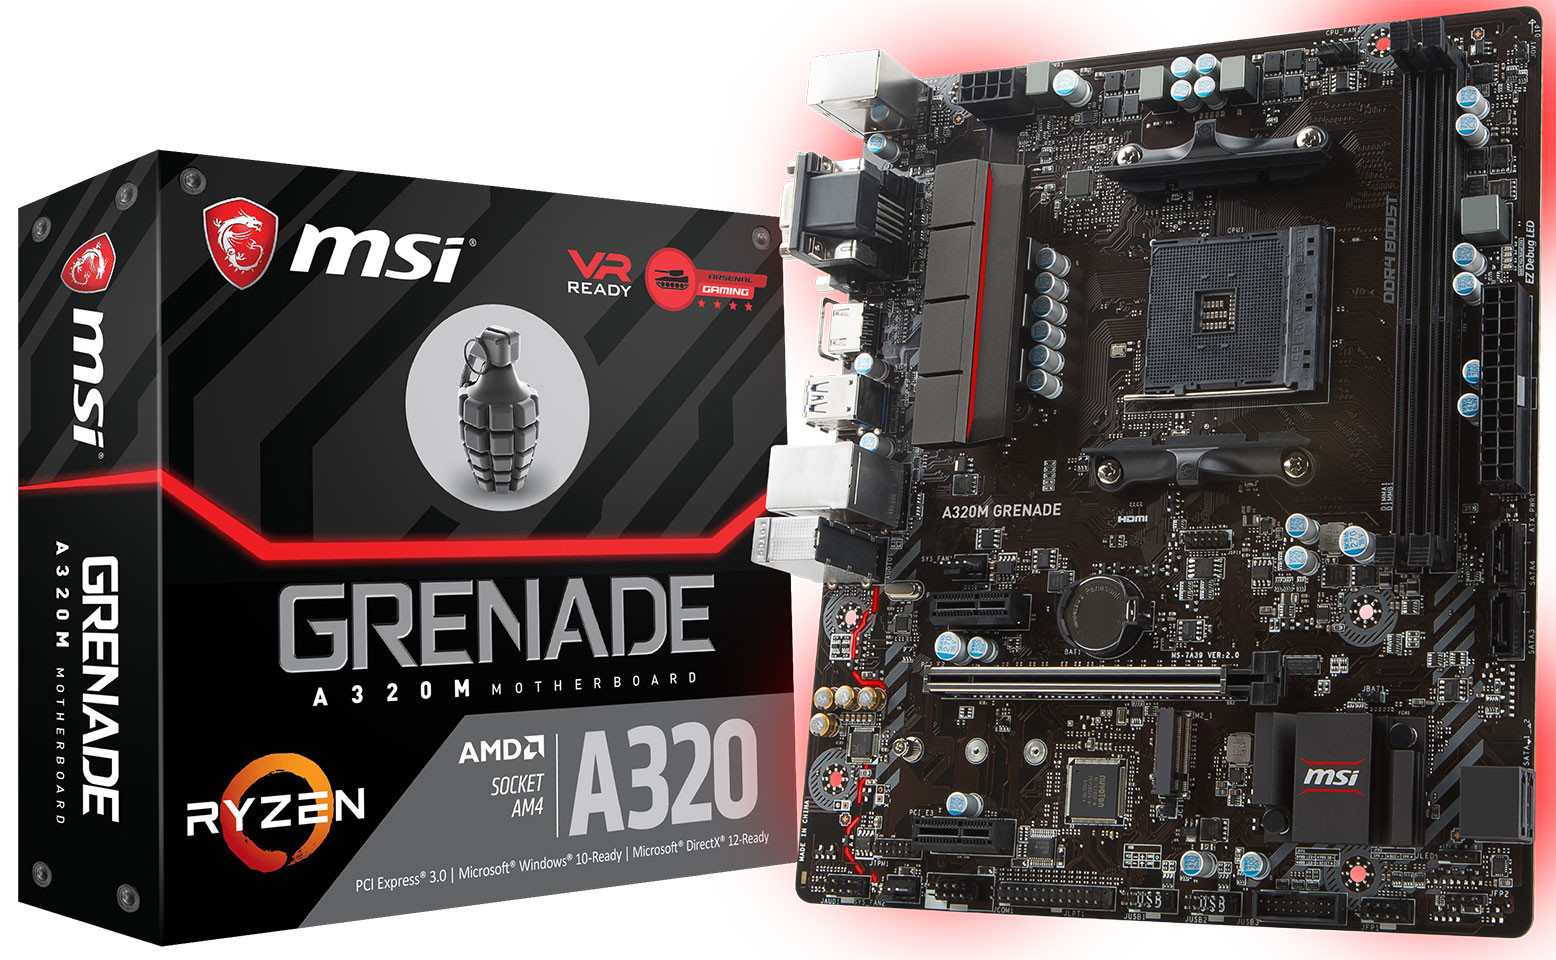 MSI Intros the A320 Grenade Socket AM4 Motherboard